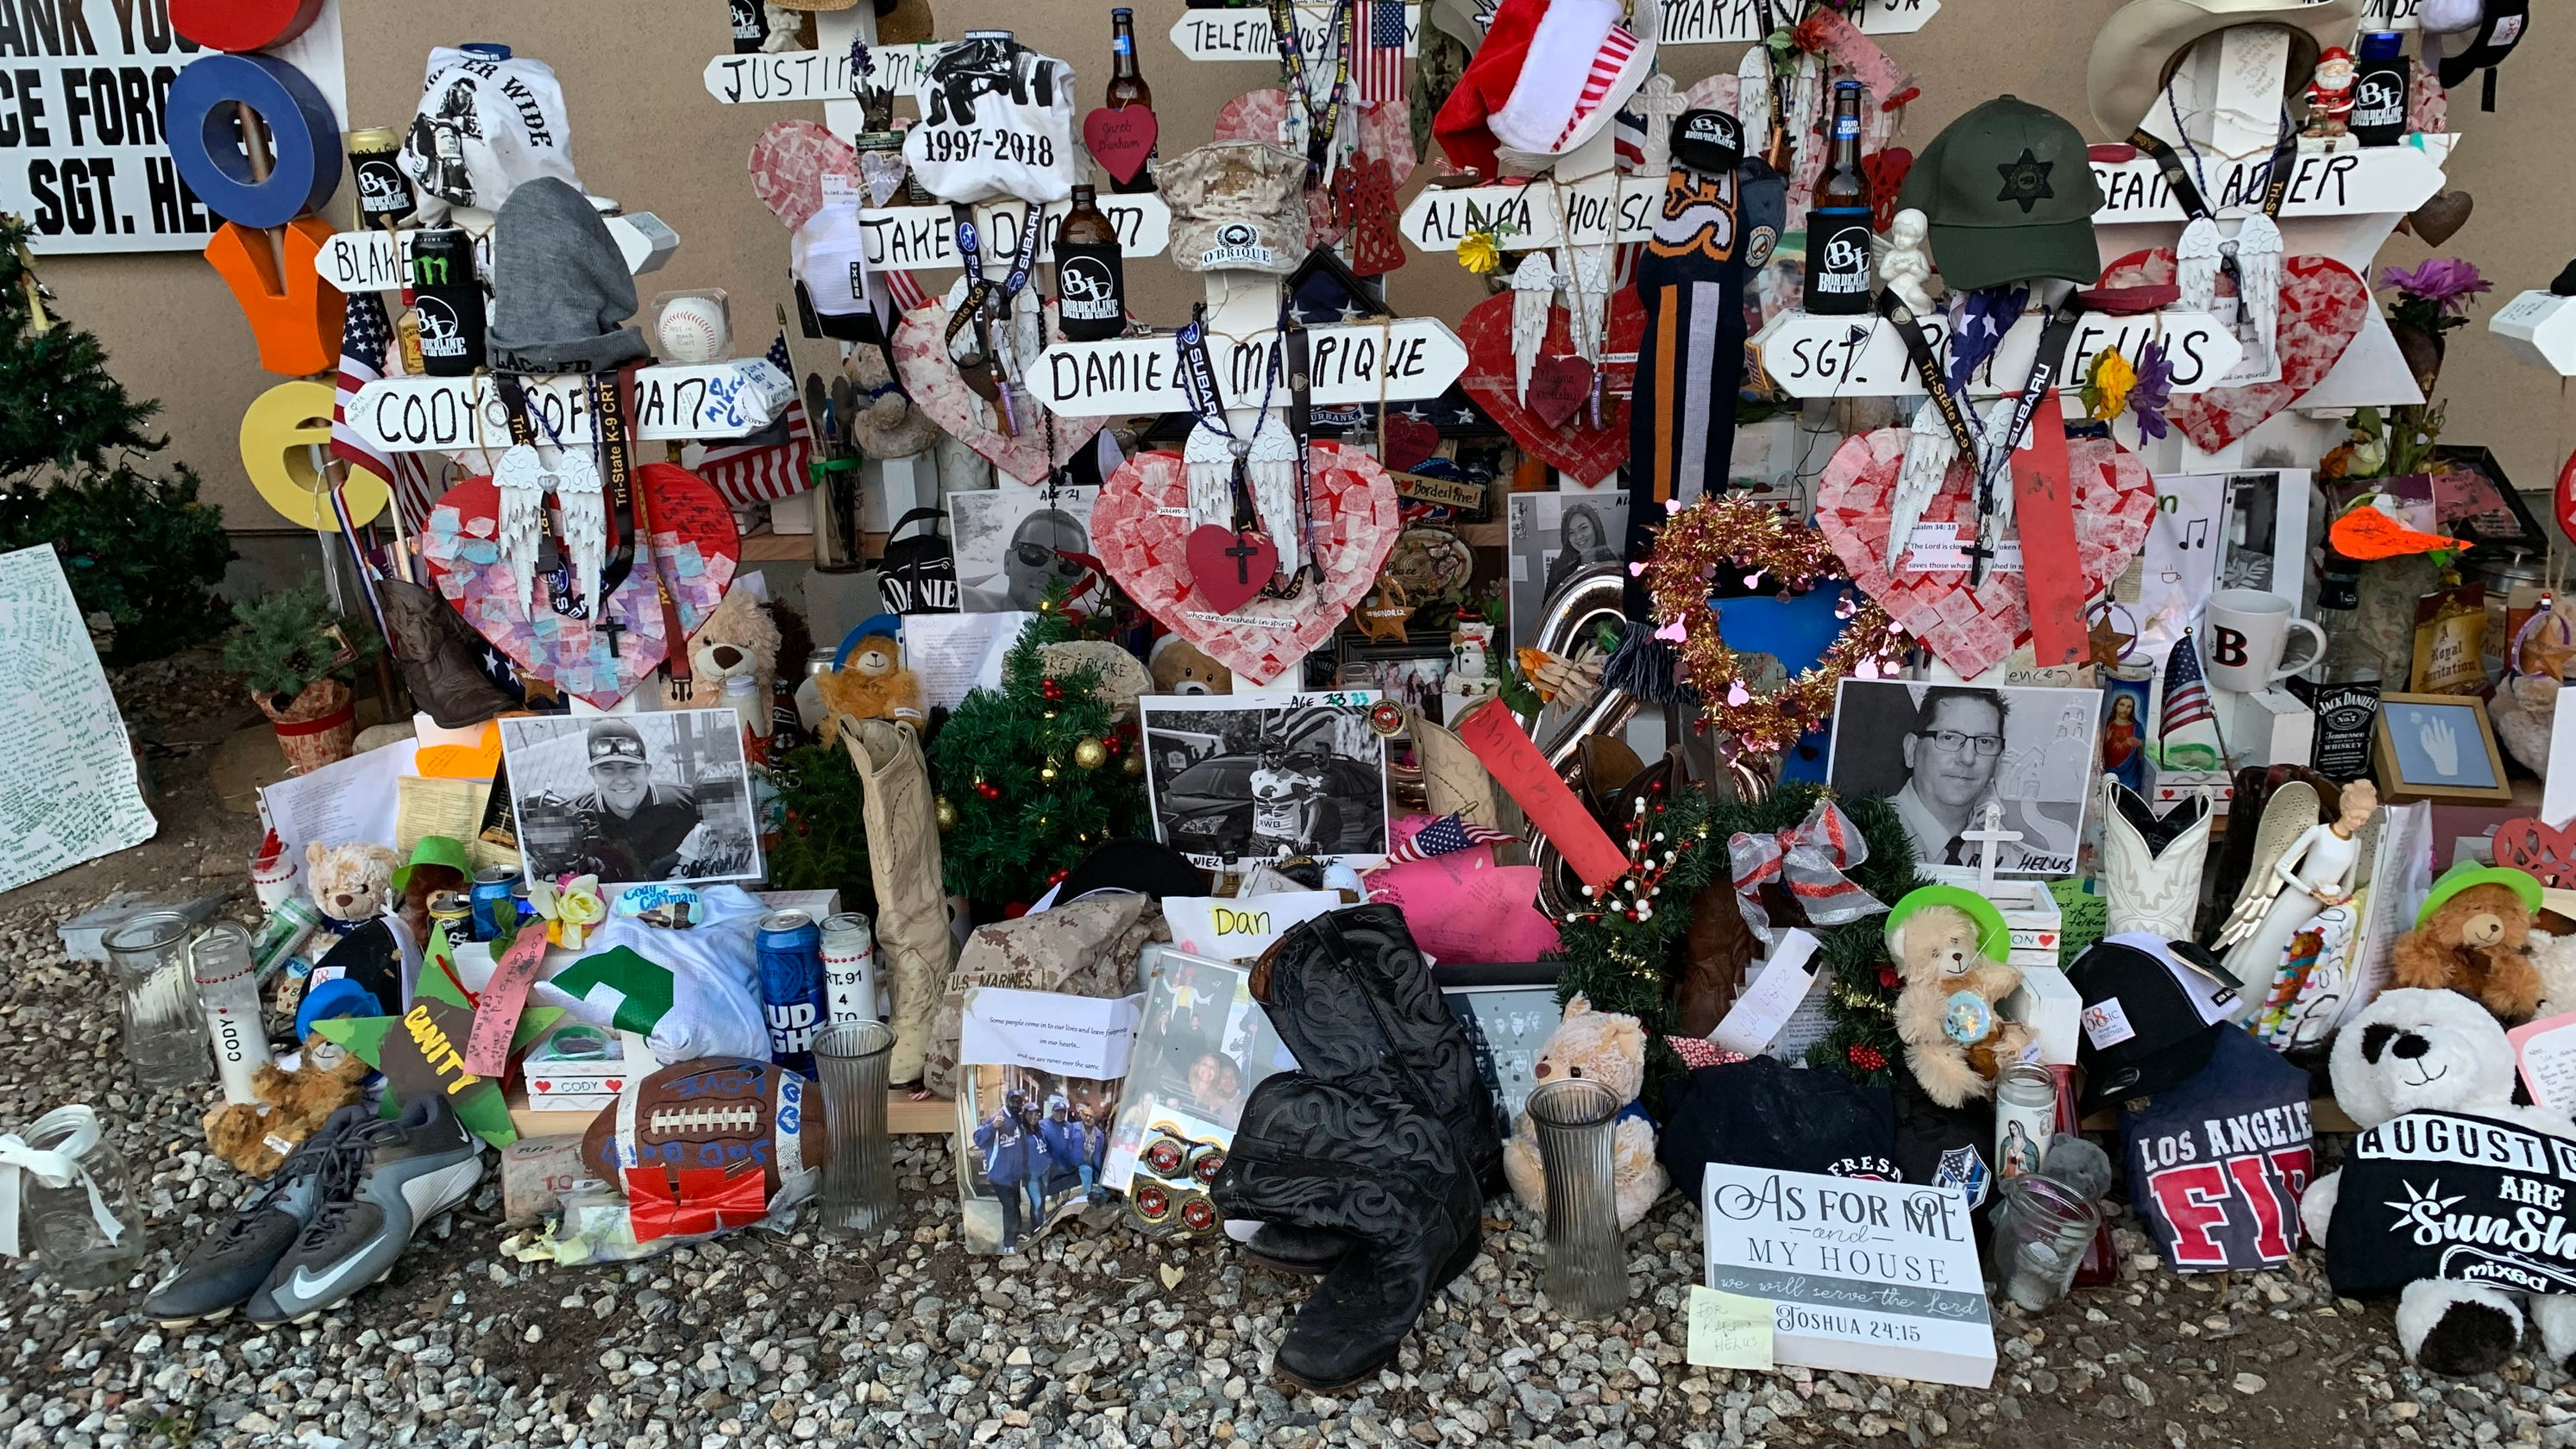 Borderline victims fund raises $2 million from thousands of